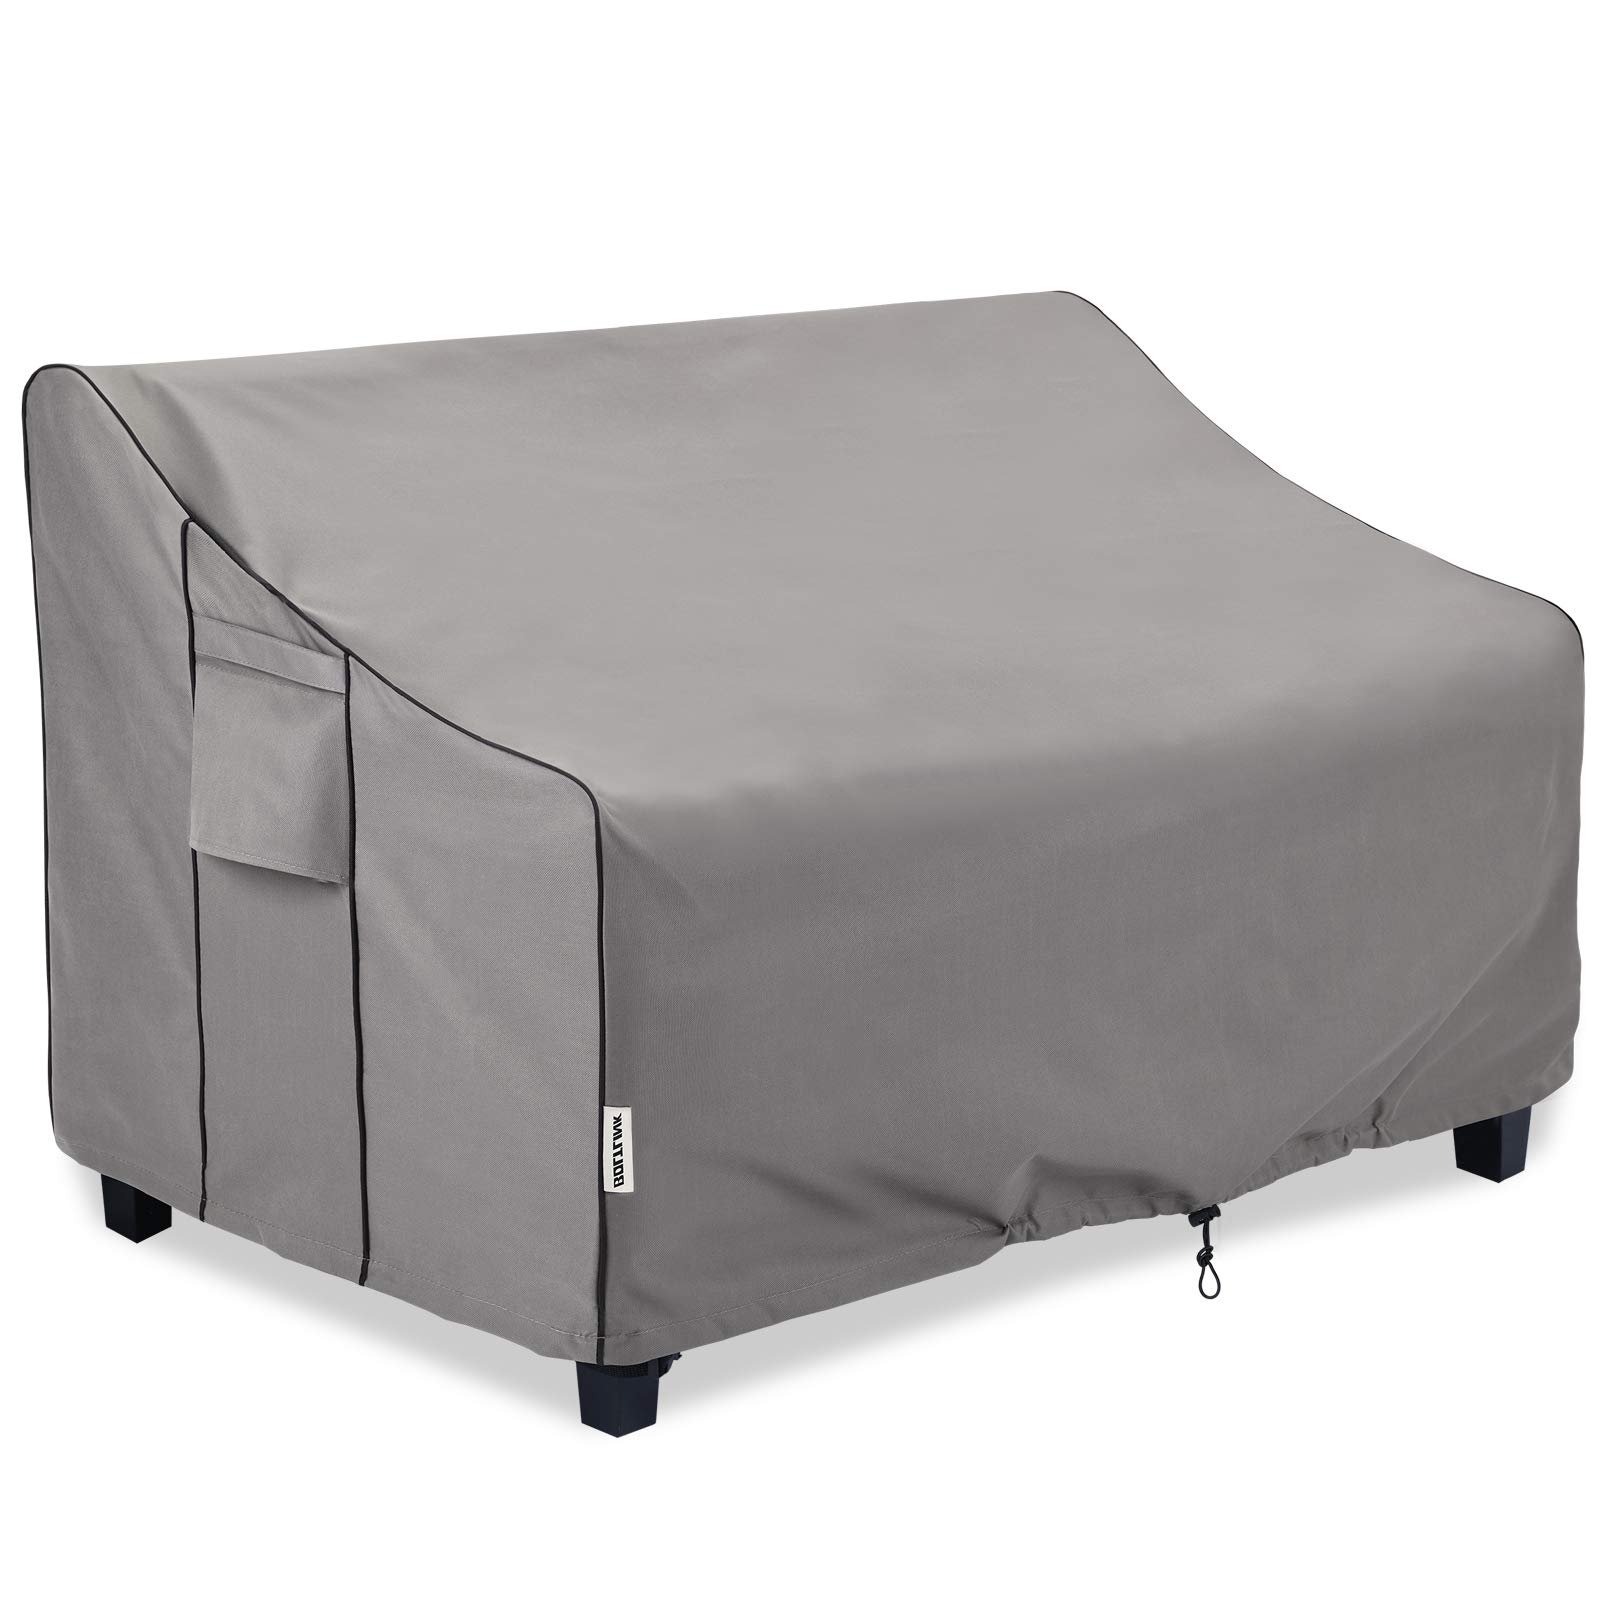 BOLTLINK Outdoor Patio Furniture Covers Waterproof ,Durable 3-Seater Sofa Cover Fits up to 76W x 40D x 33H inches